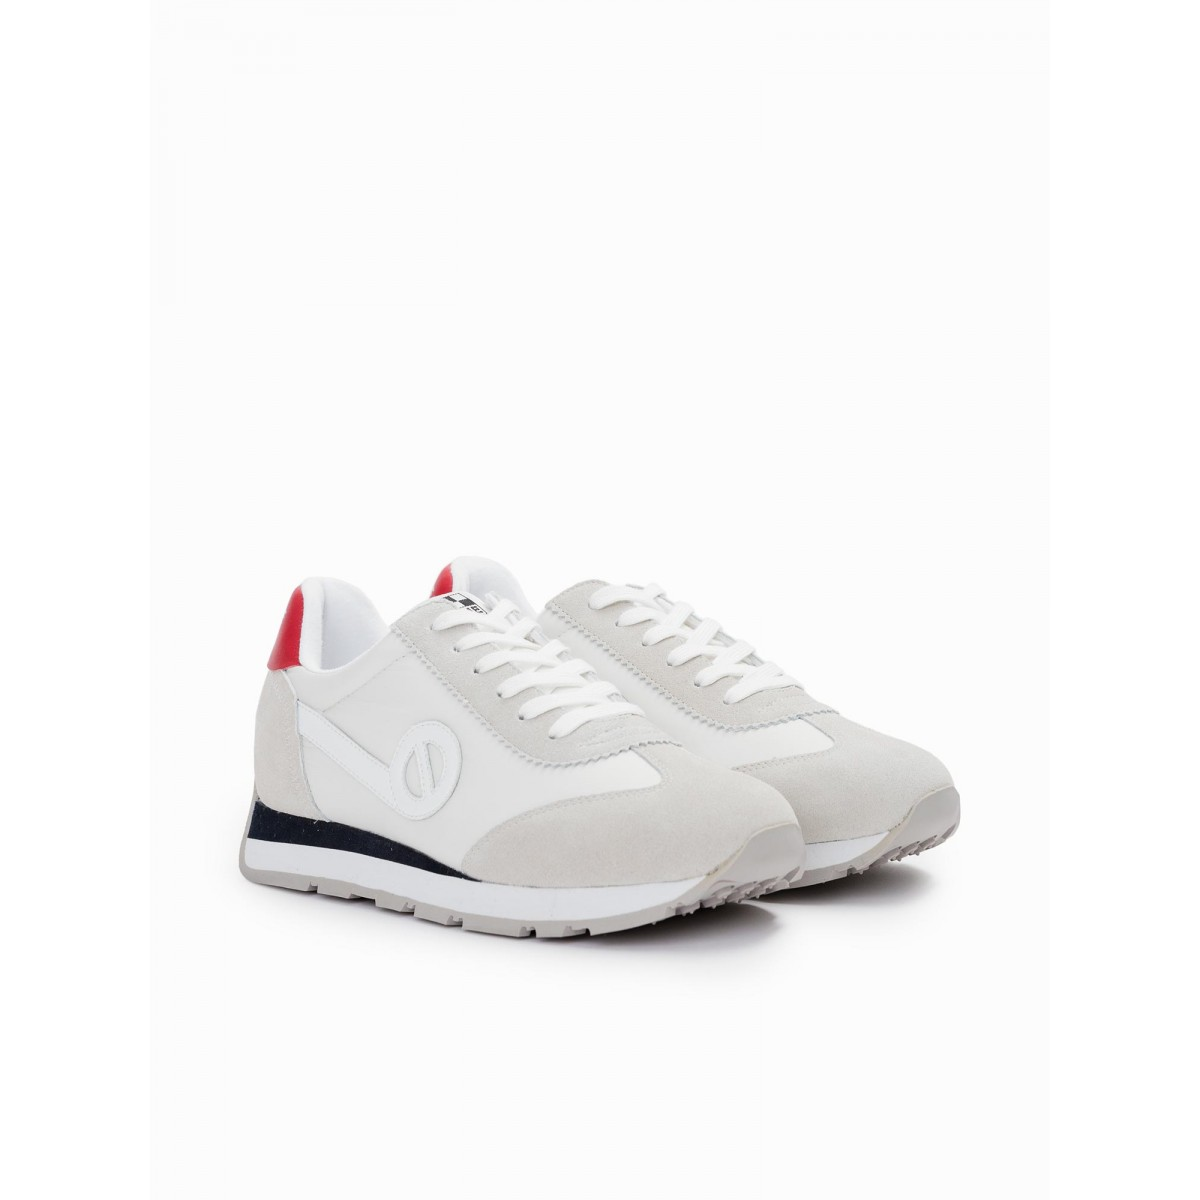 No Name CITY RUN JOGGER - NYLON/SUEDE - WHITE/WHITE